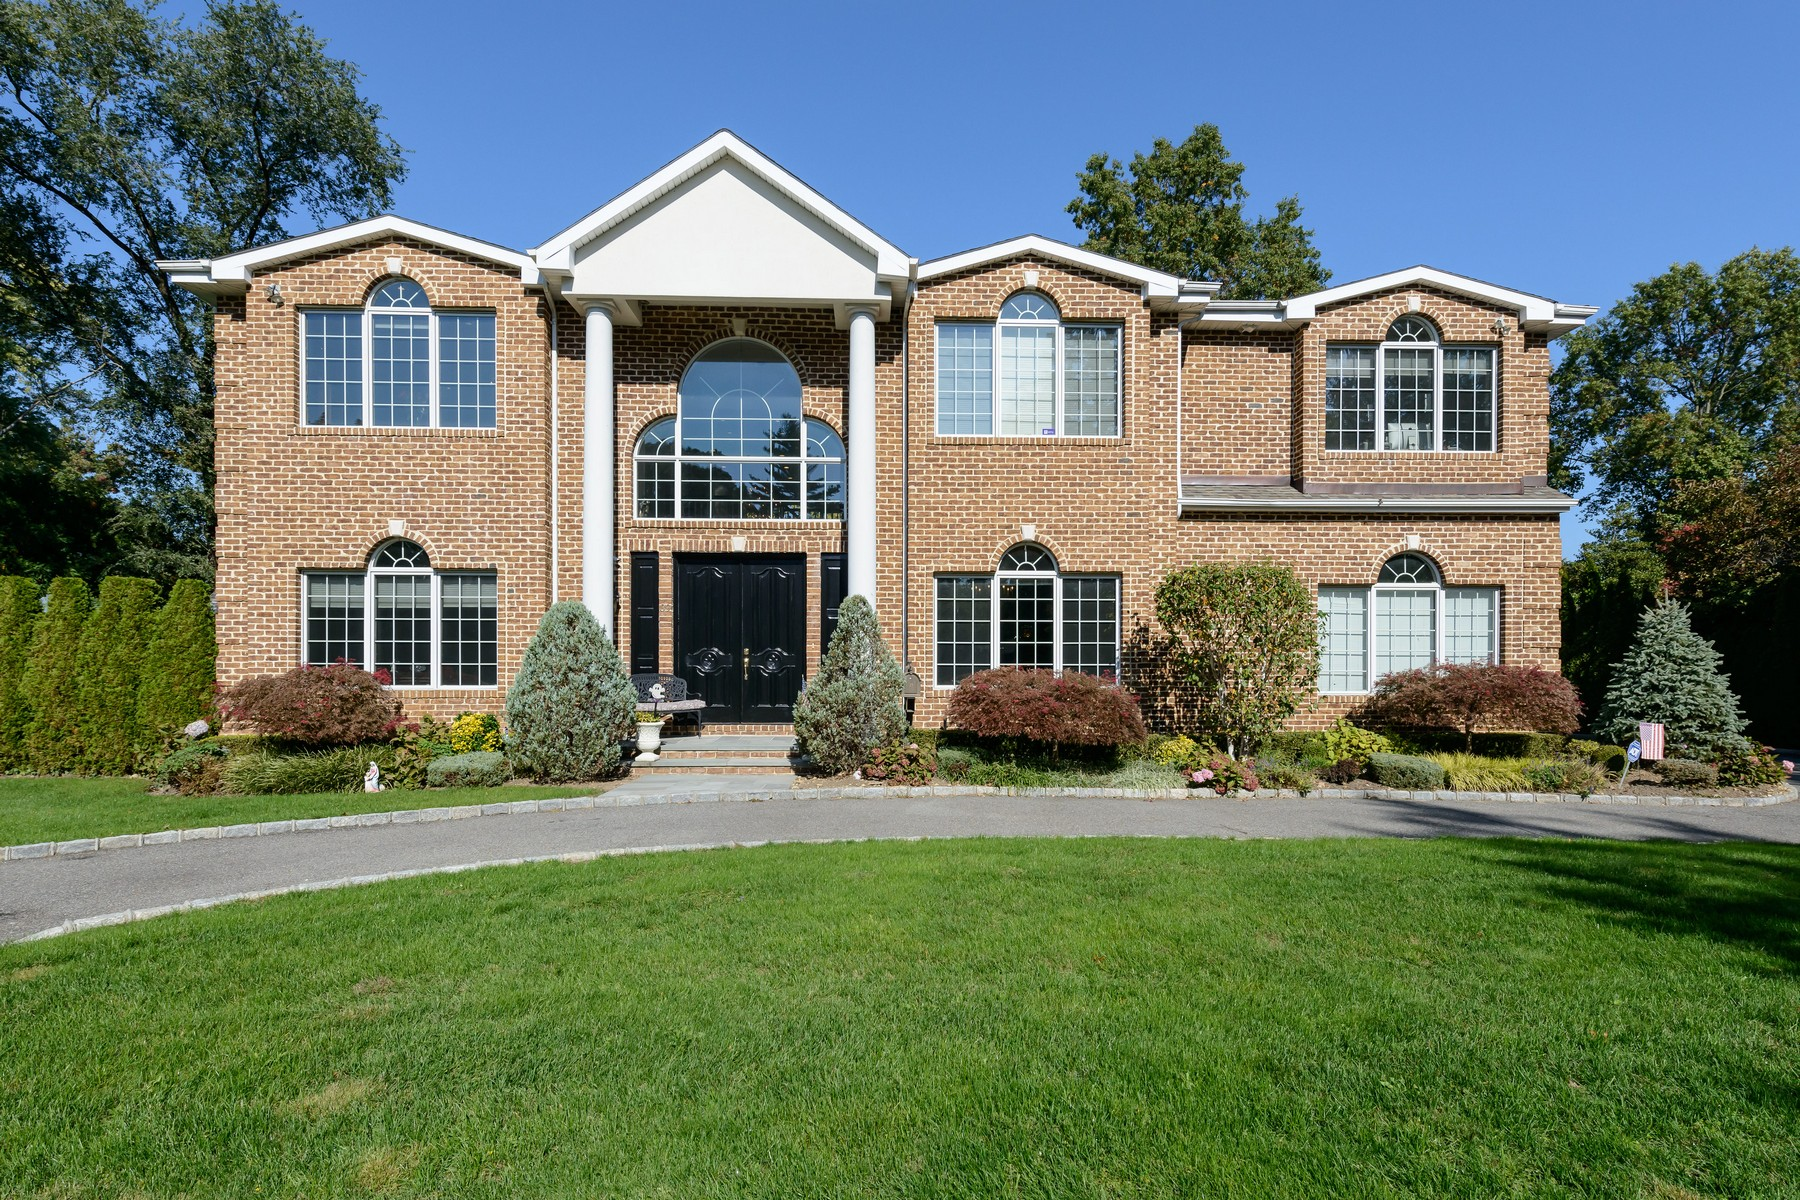 Villa per Vendita alle ore Colonial 39 Pebble Ln Roslyn Heights, New York, 11577 Stati Uniti